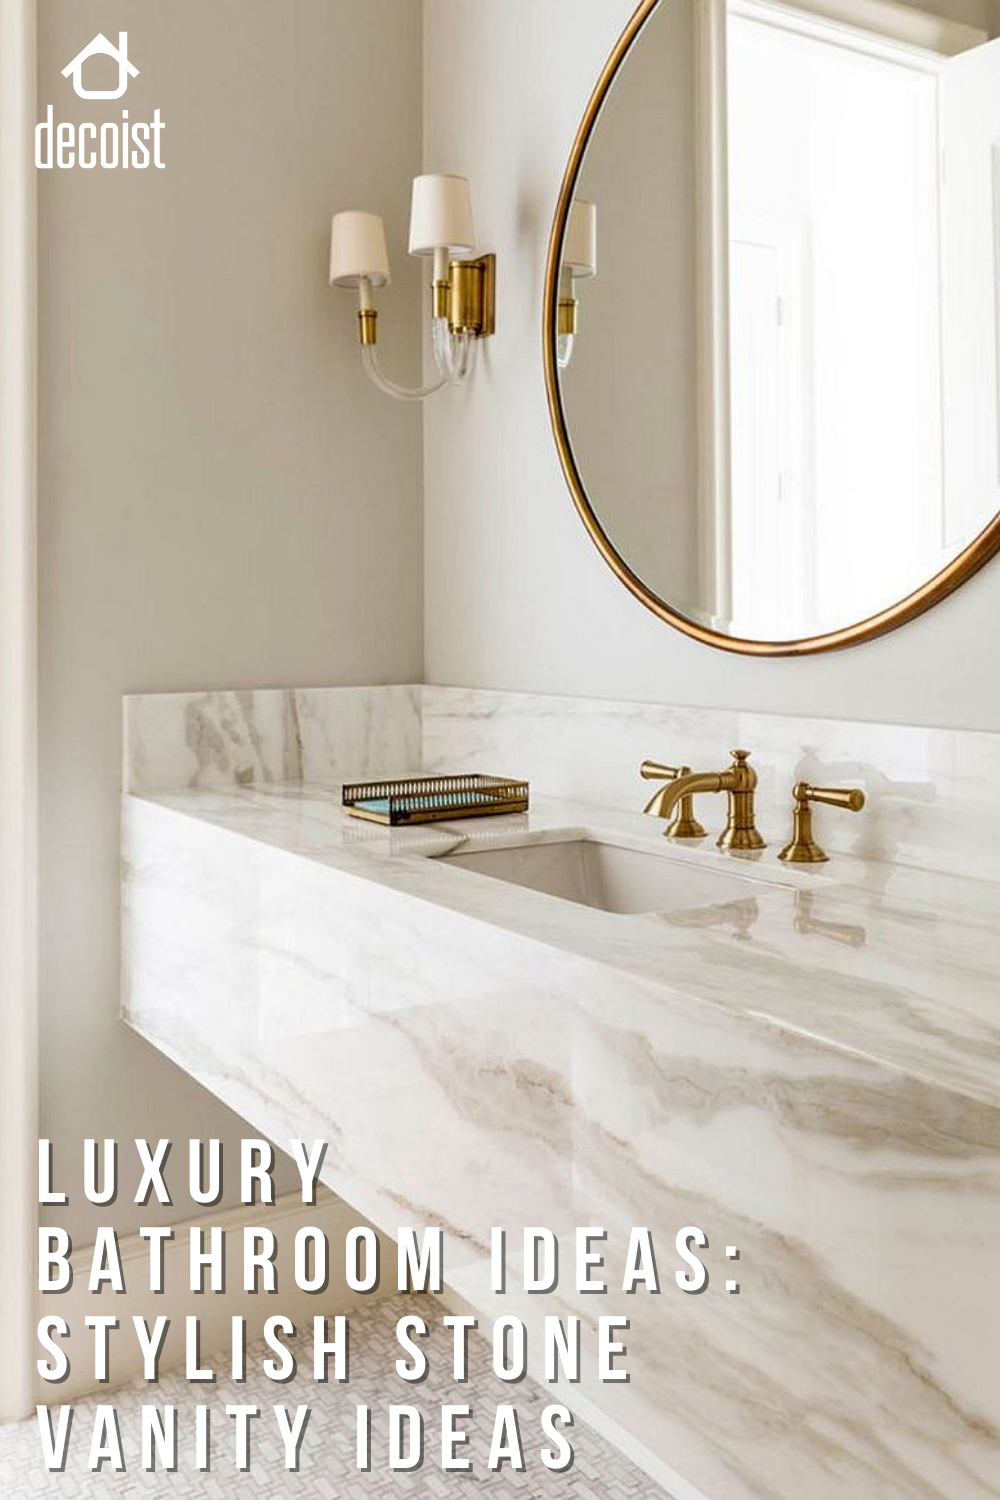 Stylish Stone Vanity Ideas Iconic Trend That Brings Glamour To The Bathroom In 2021 Bathroom Sink Design Marble Bathroom Vanity Bathroom Interior Design